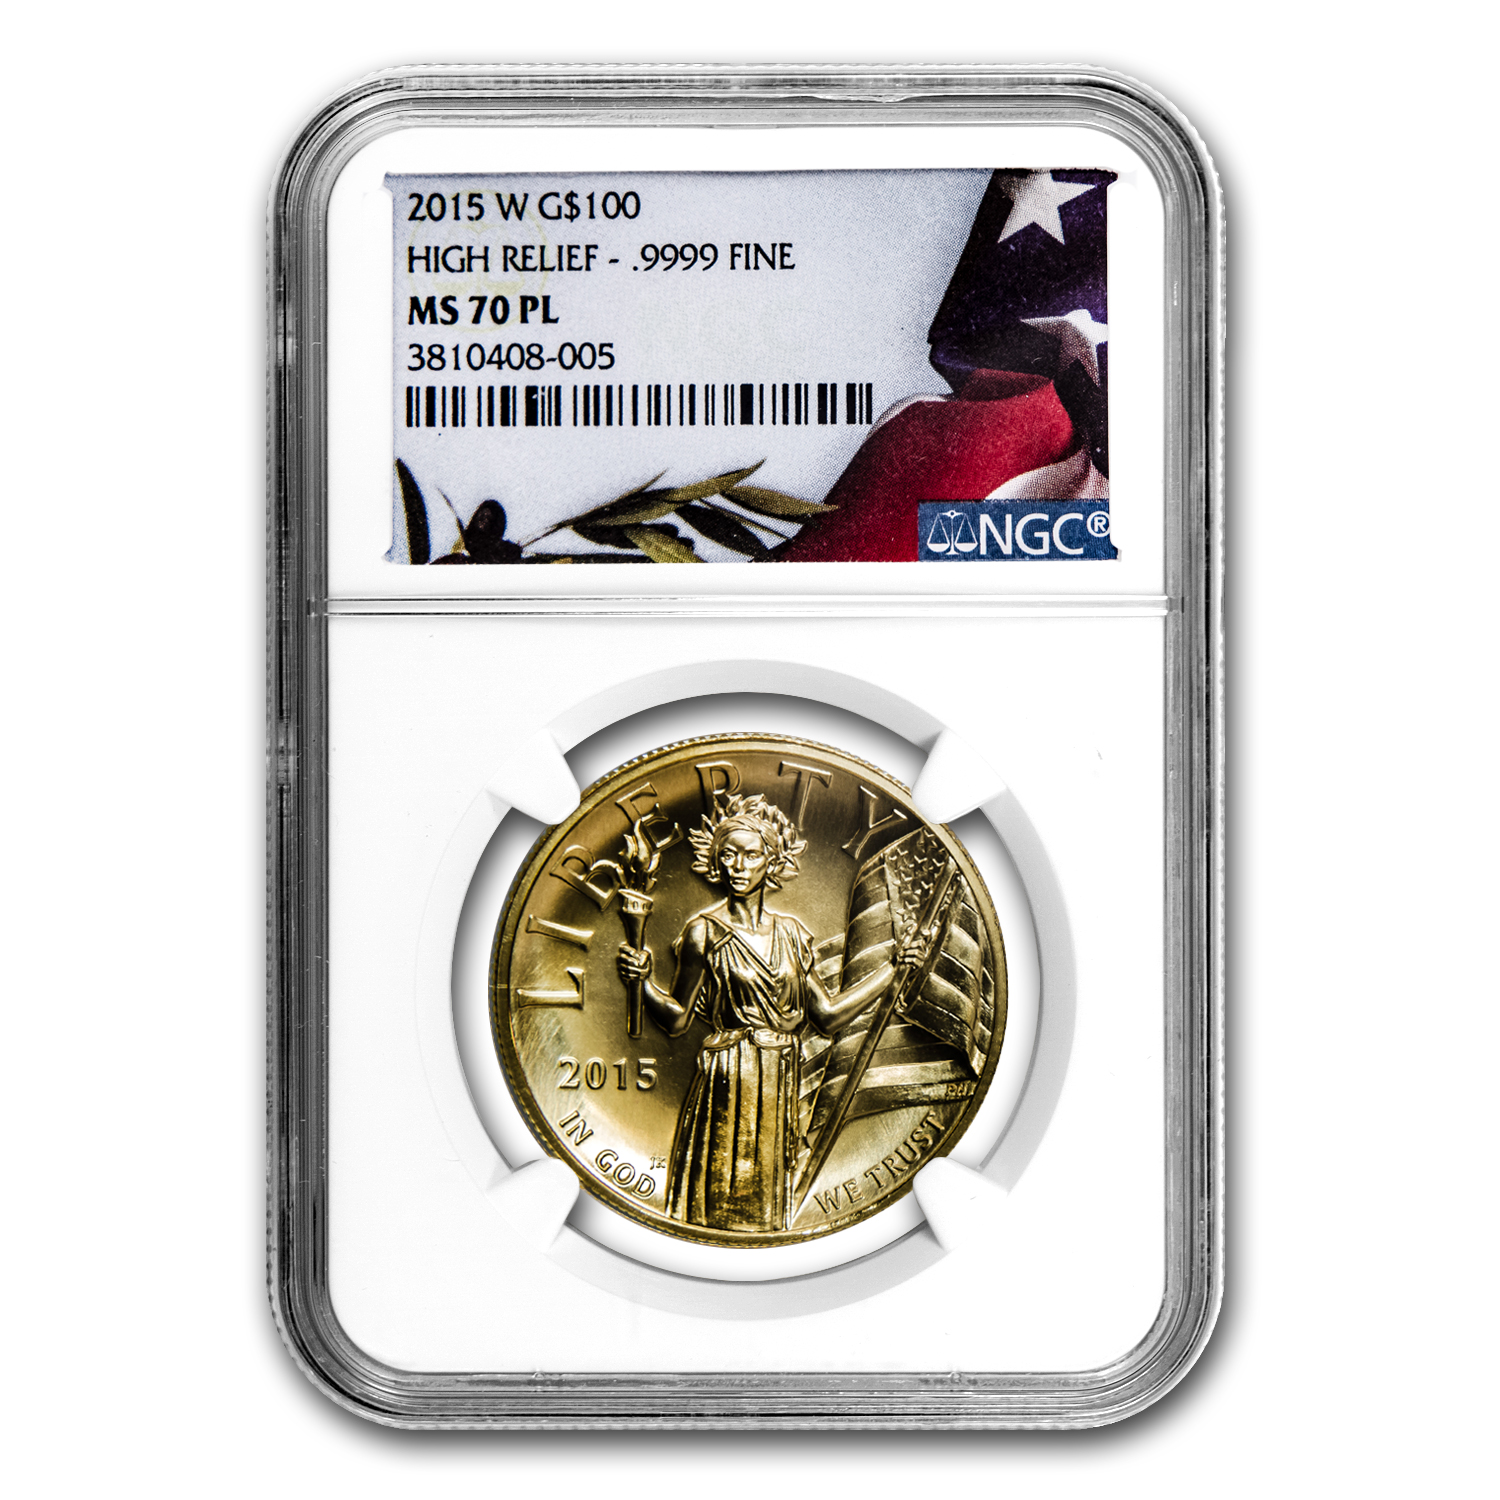 2015 High Relief American Liberty Gold MS-70 PL NGC